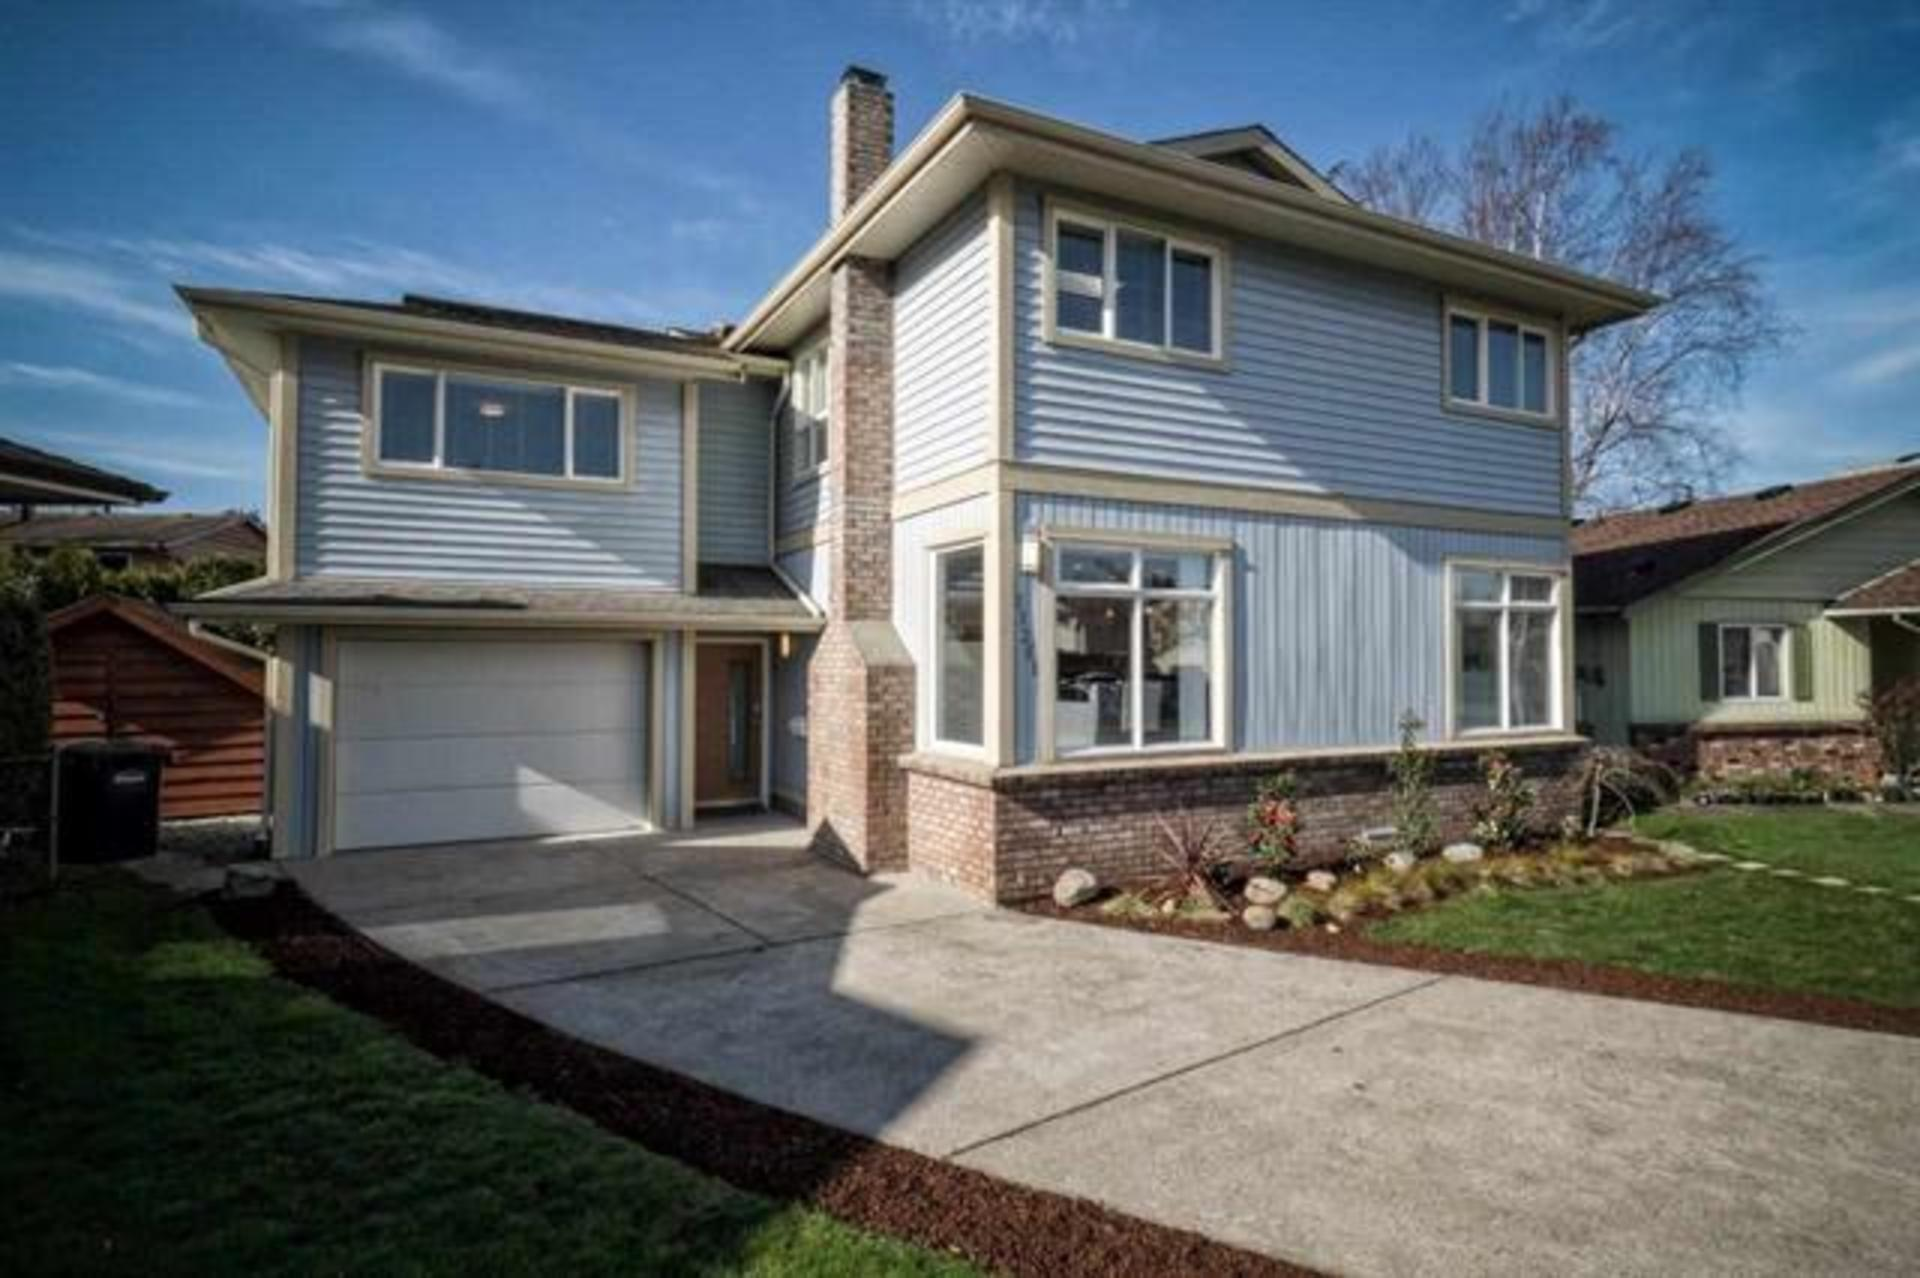 262060648 at 11251 Cutter Place, Steveston South, Richmond